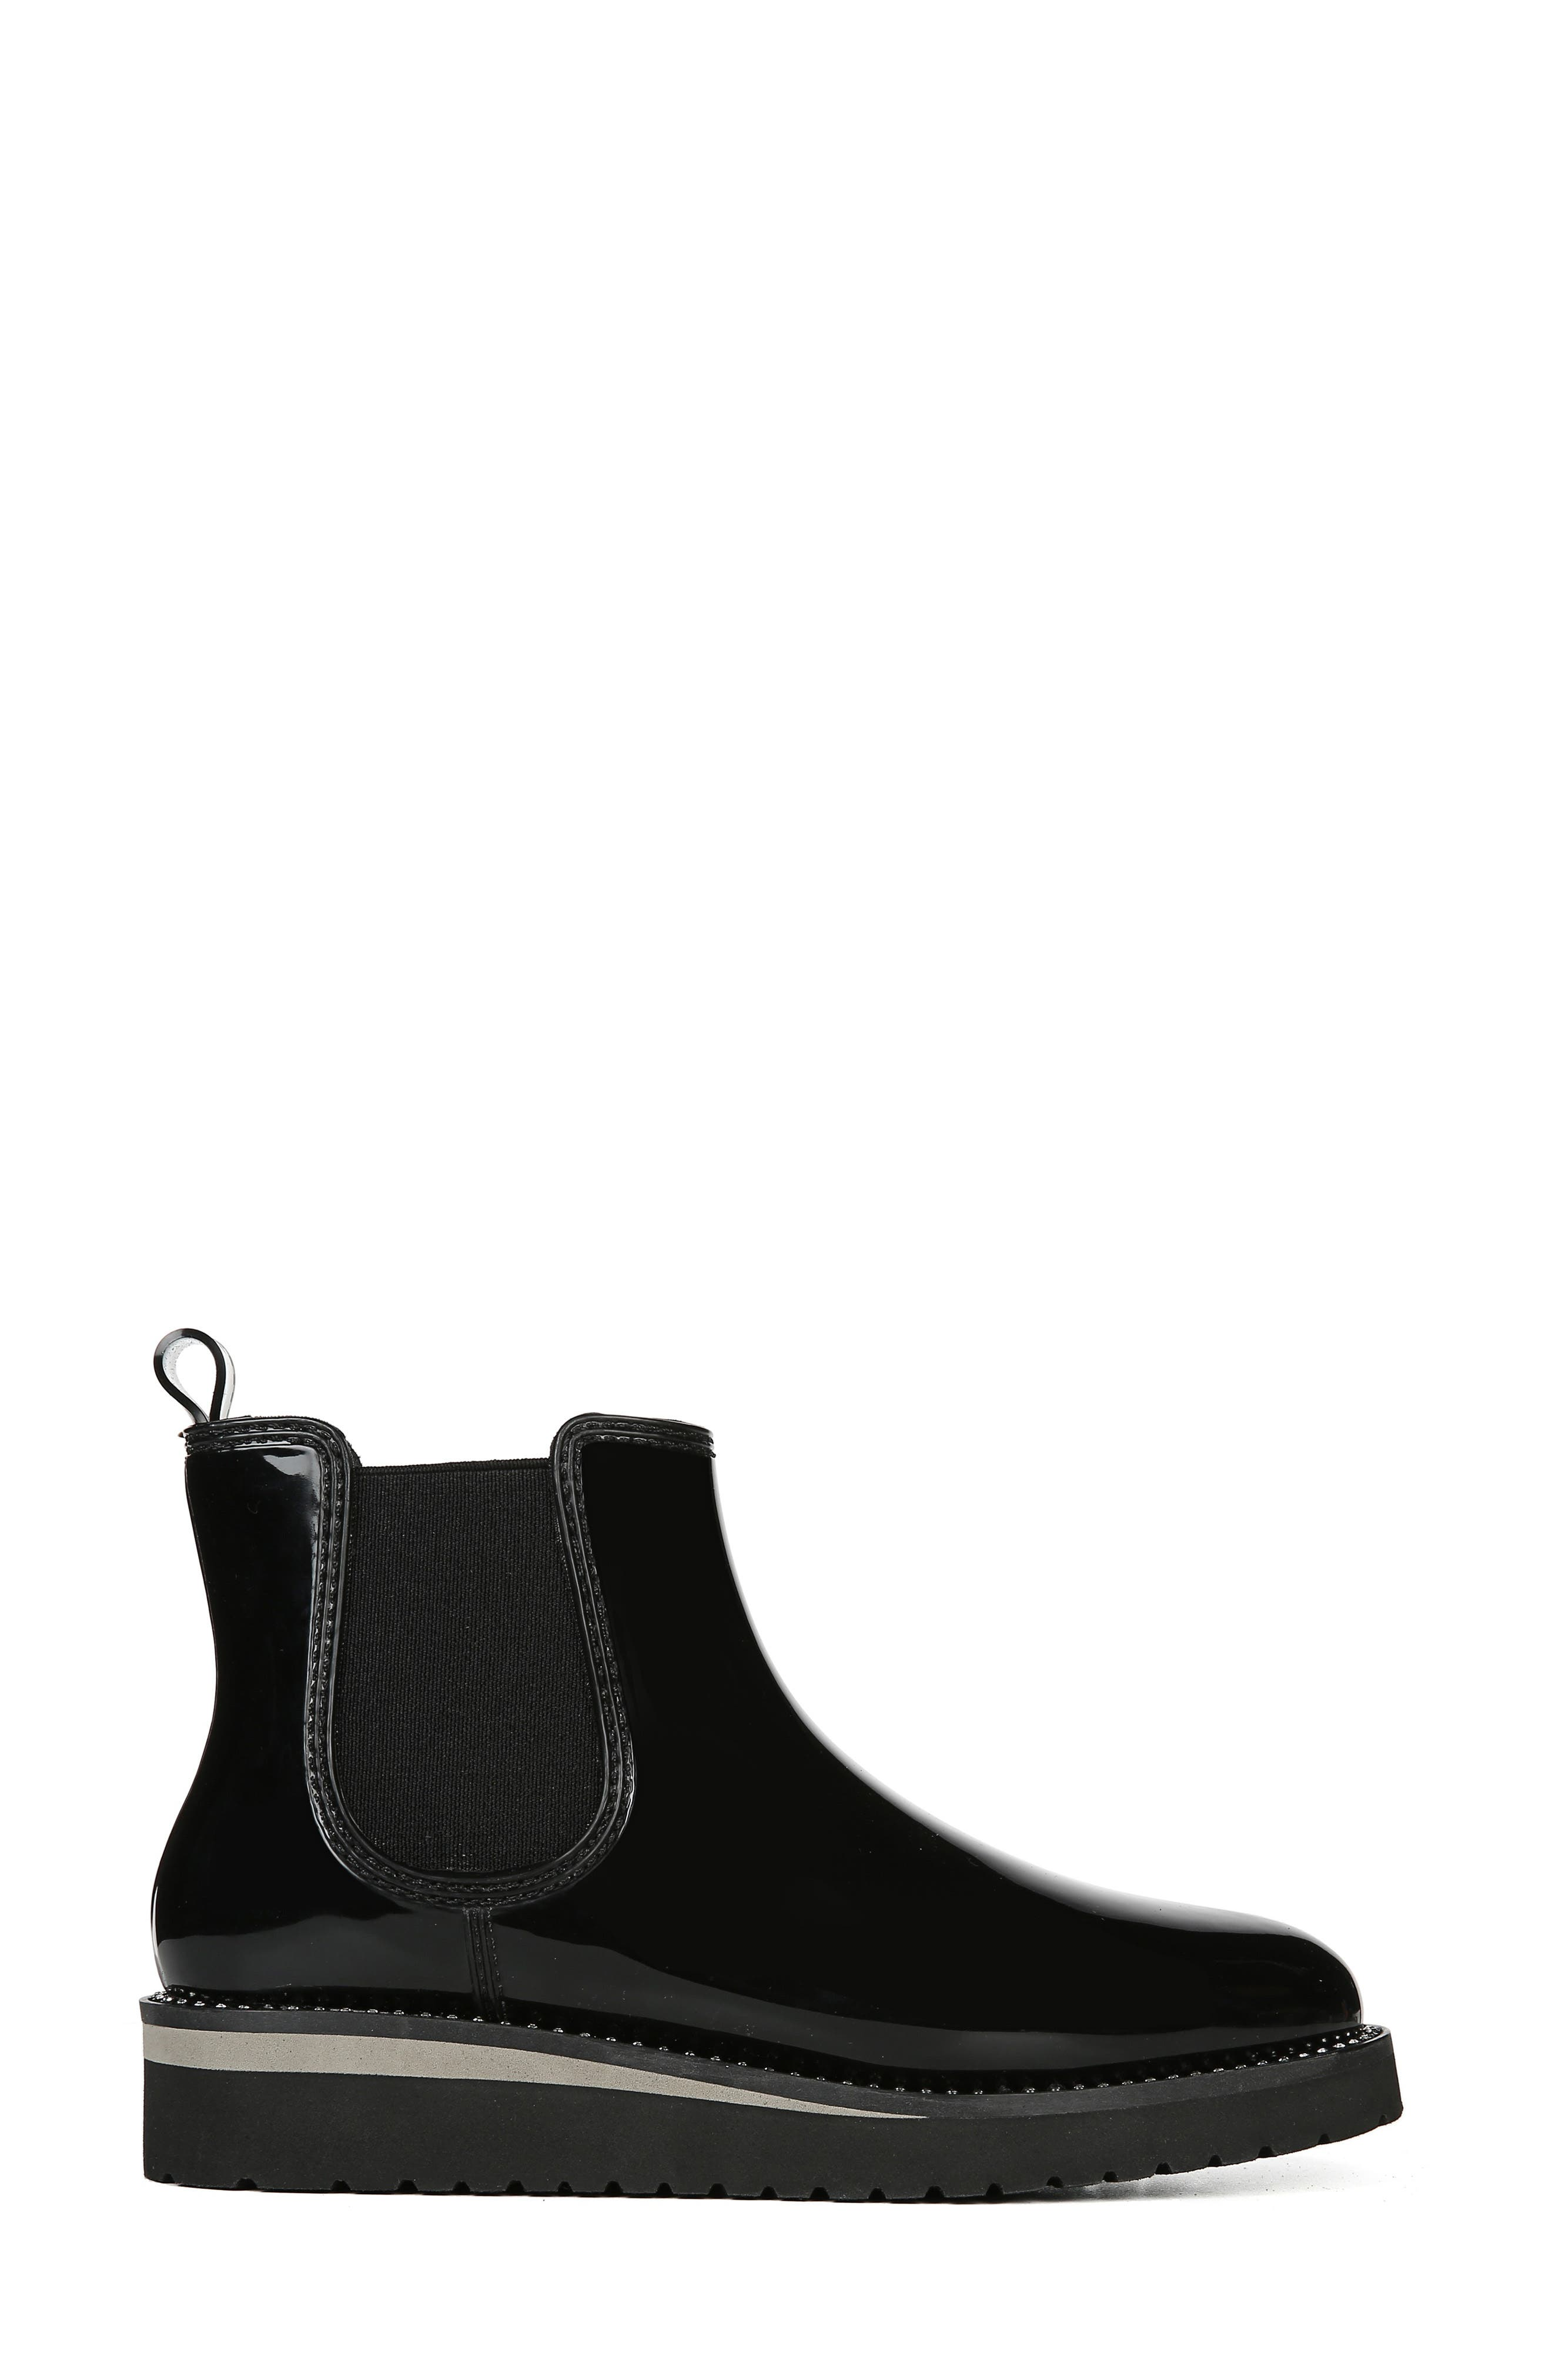 Luna Waterproof Chelsea Boot,                             Alternate thumbnail 3, color,                             BLACK